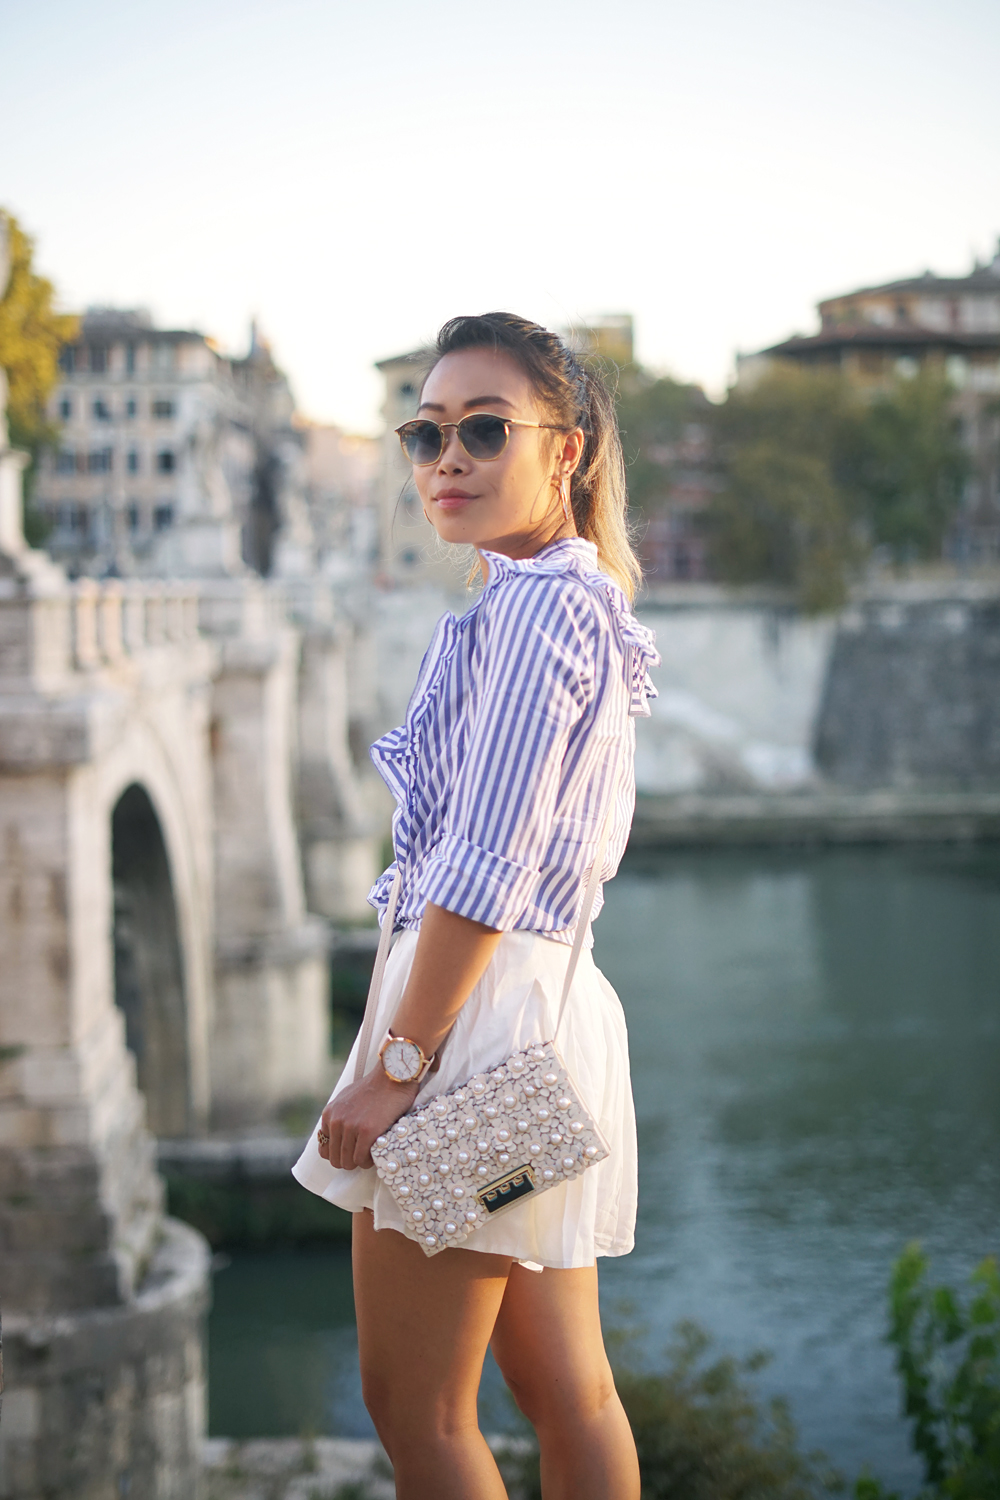 05rome-pontesantangelo-bridge-travel-ootd